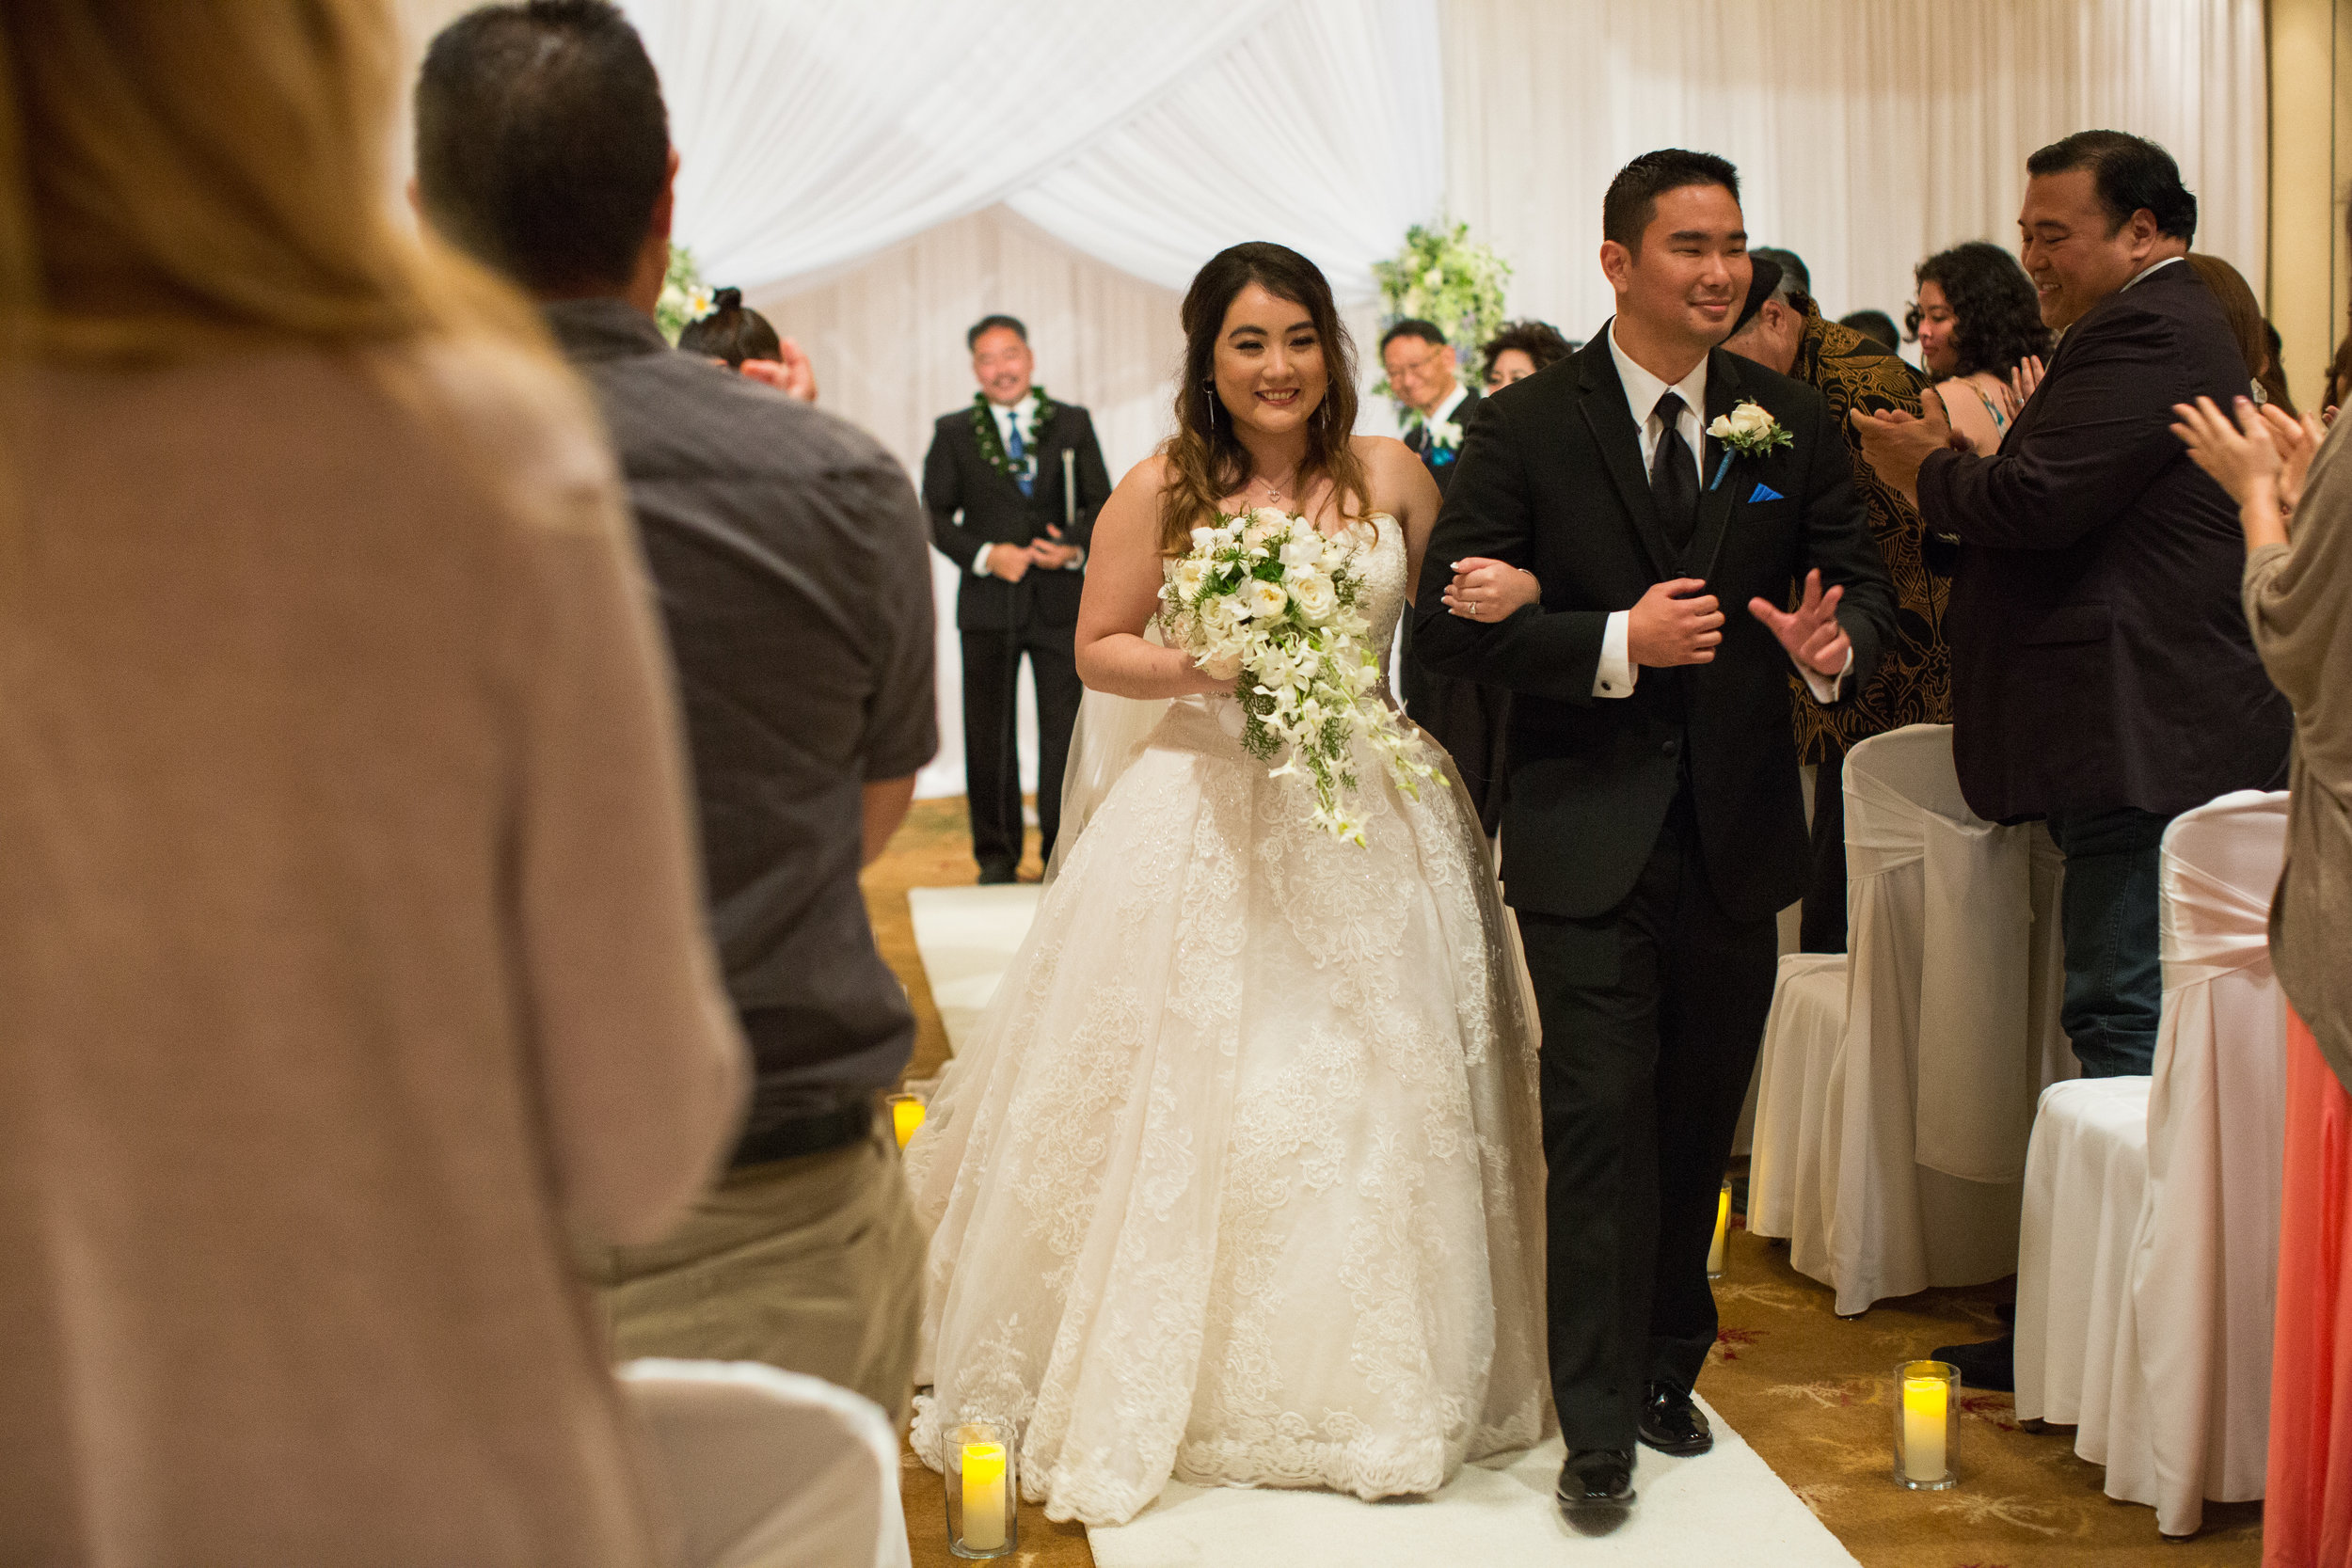 17-hyatt-regency-wedding-ceremony.jpg